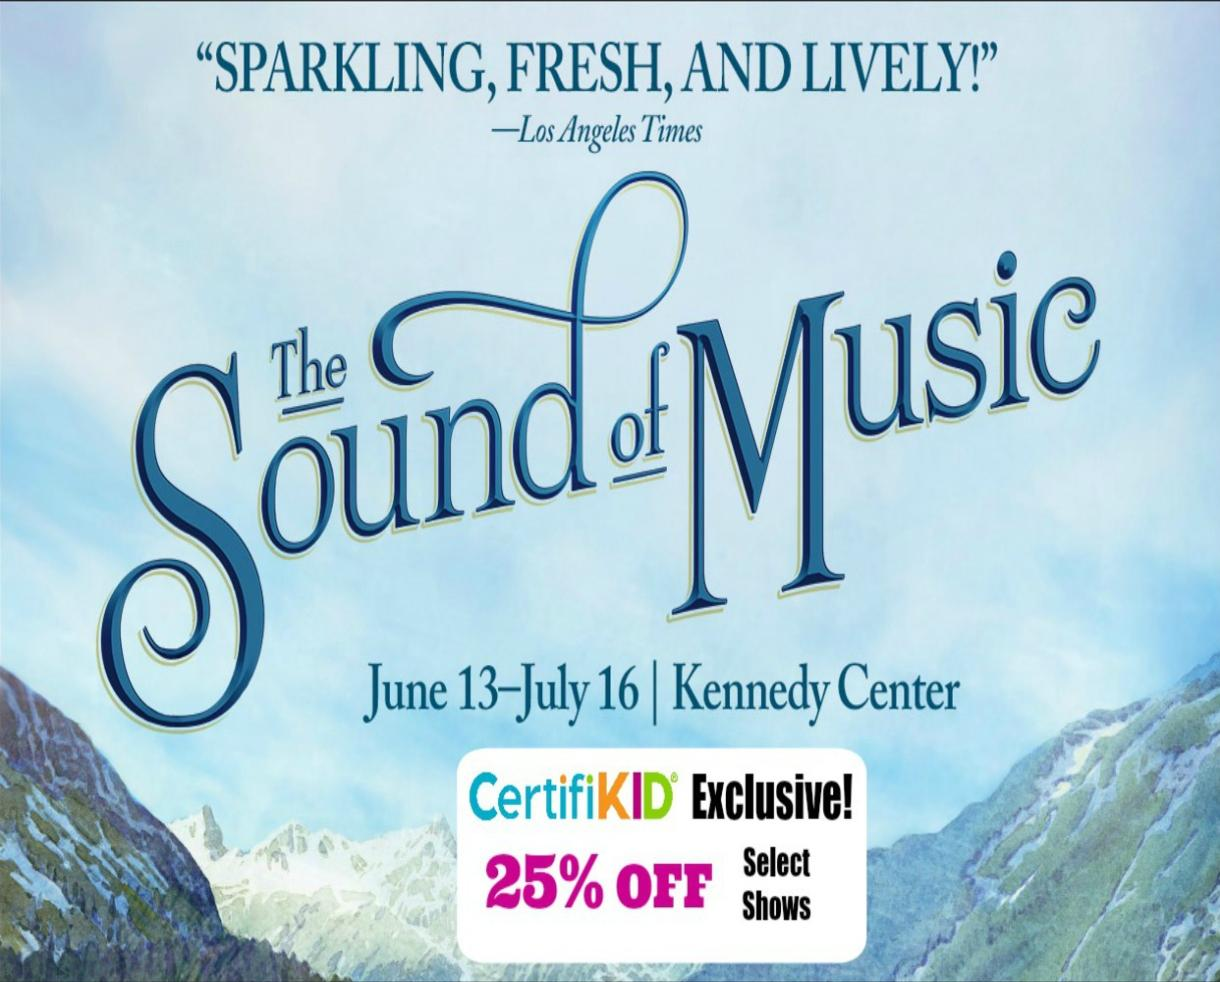 Up to 25% Off THE SOUND OF MUSIC at The Kennedy Center - JULY SHOWS ADDED!!